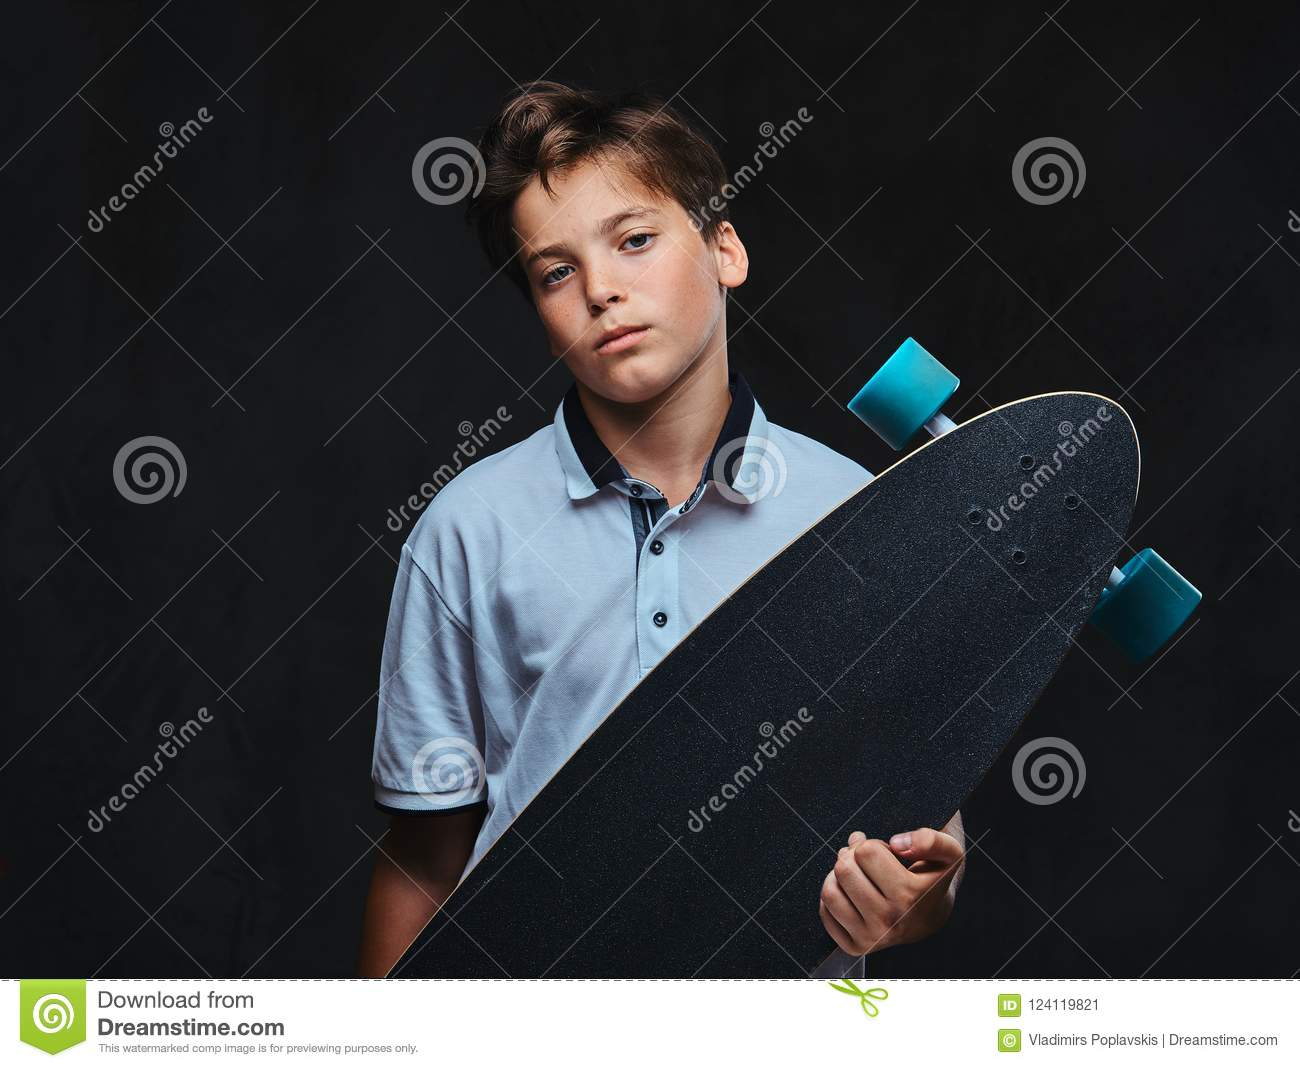 Portrait Of A Young Skater Boy Dressed In A White T Shirt Holds A